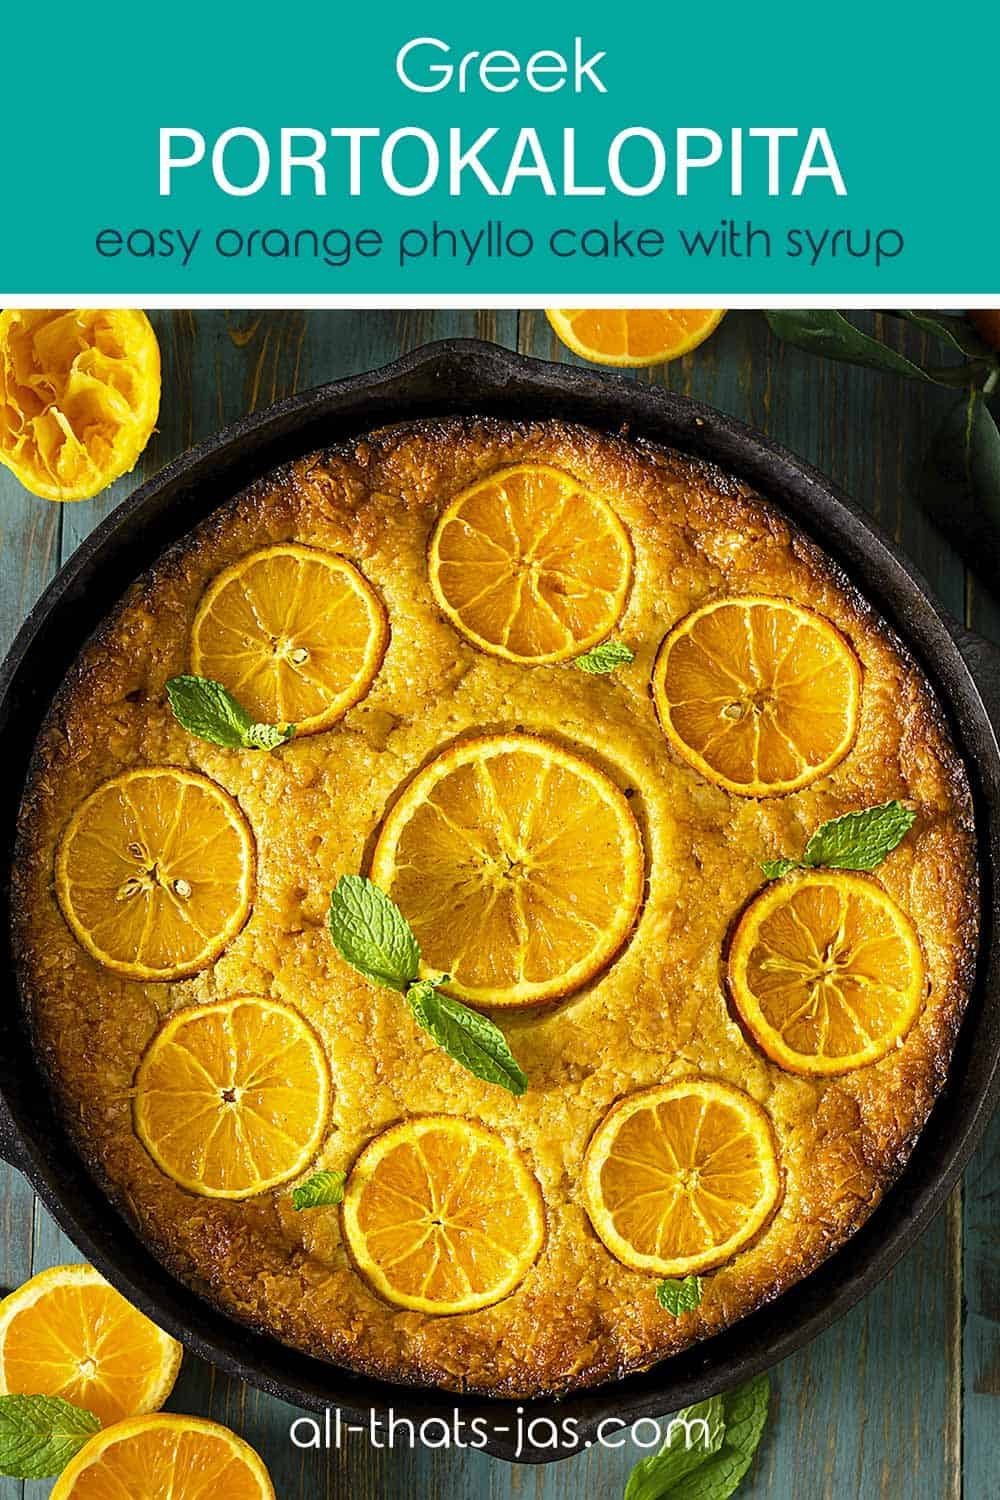 A cake in a cast-iron skillet with oranges and text overlay.